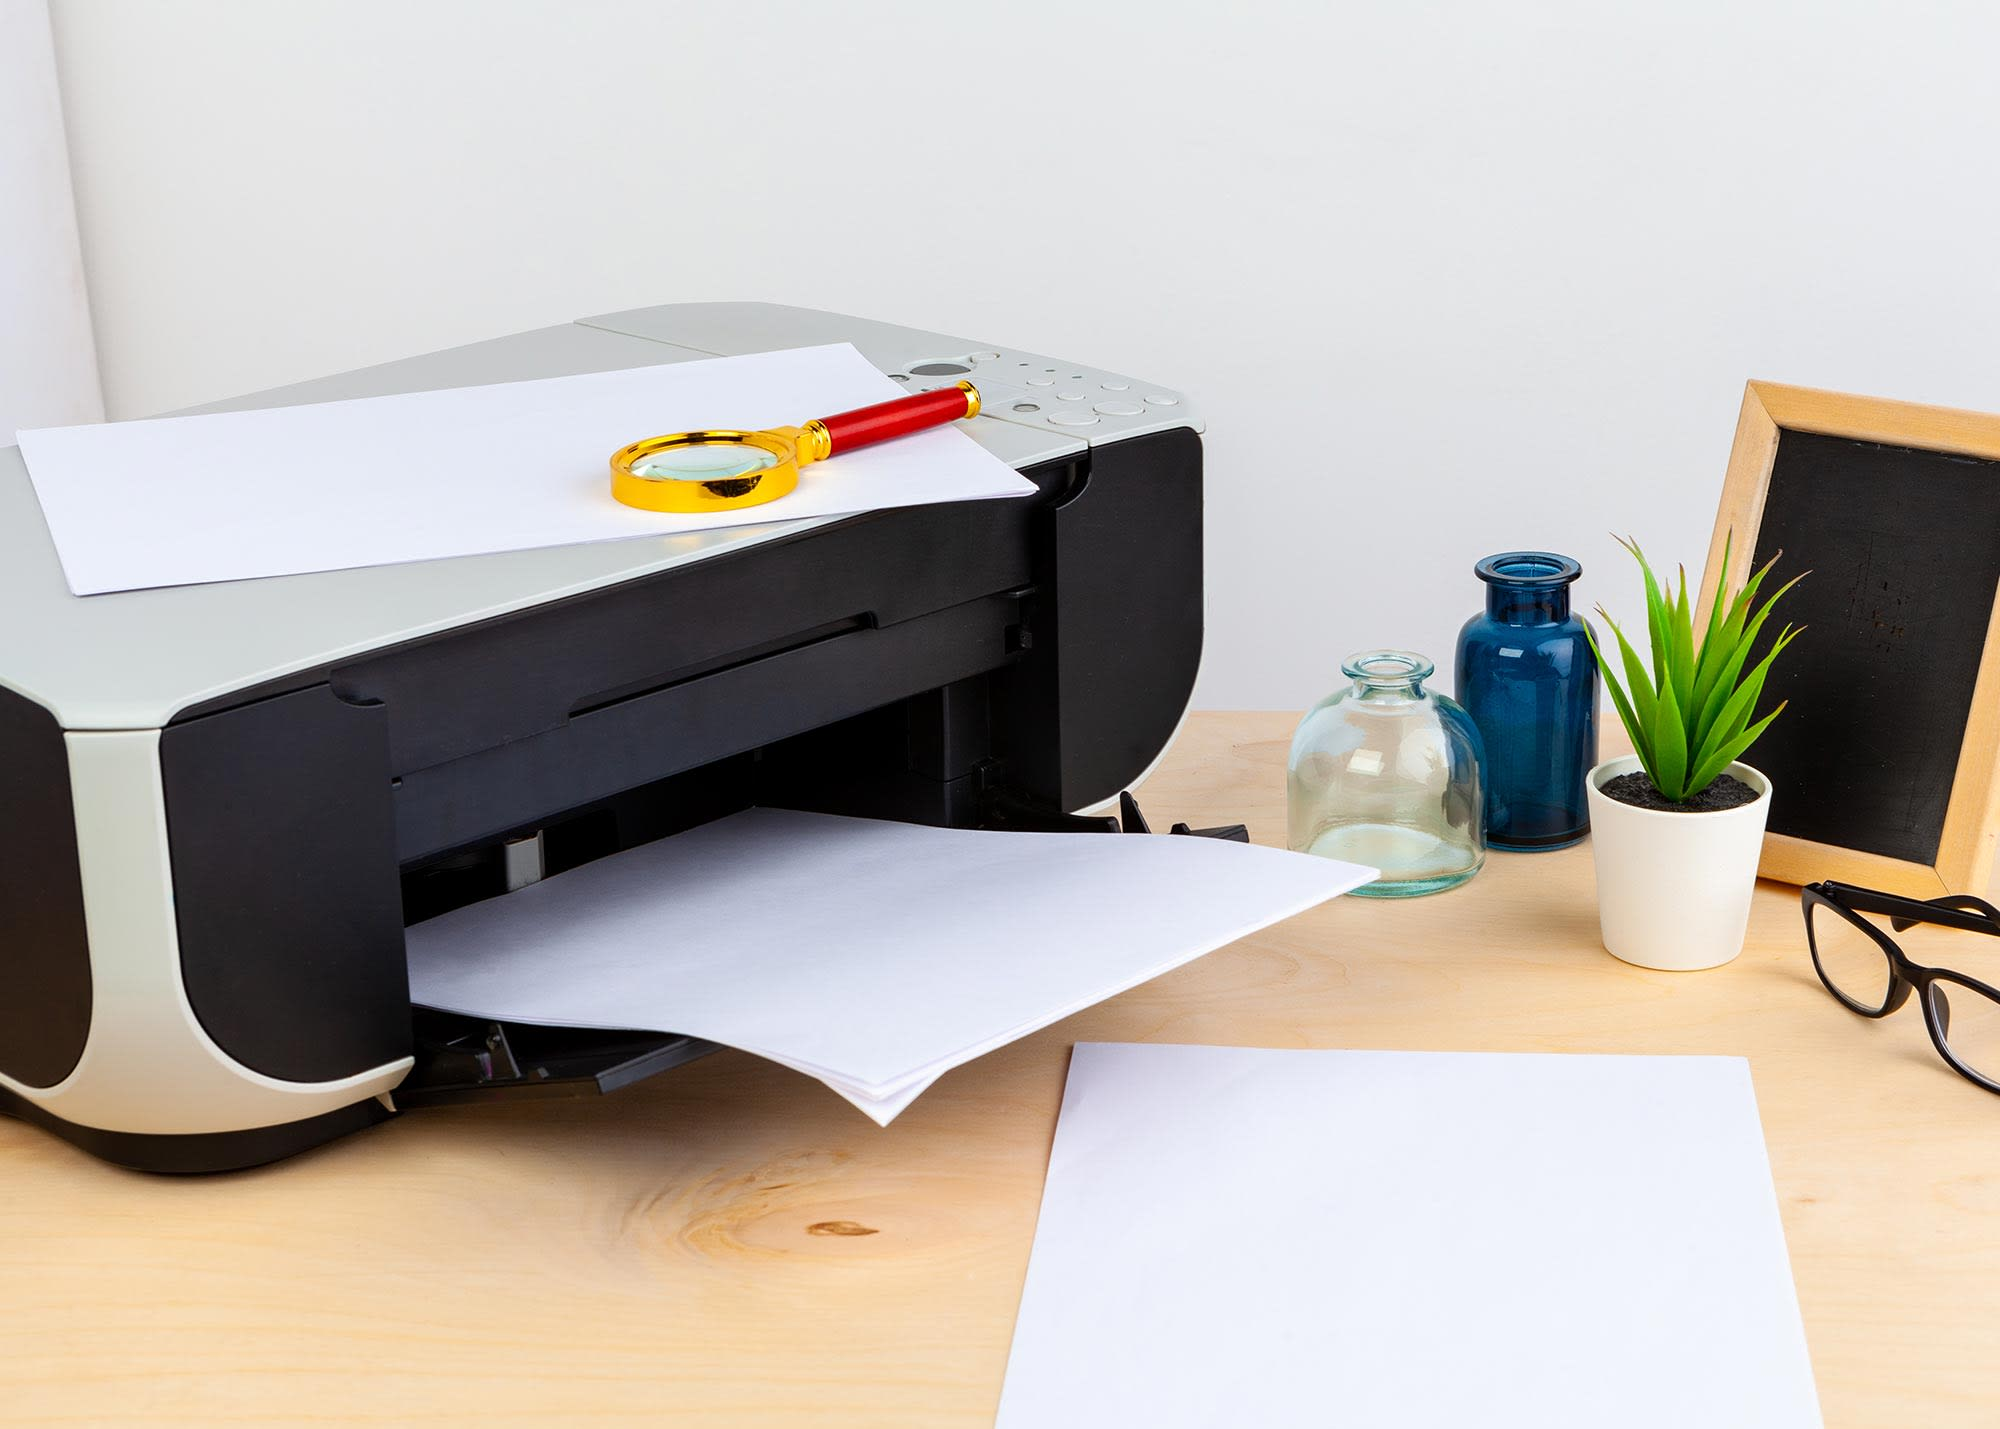 The-Best-Home-Education-Home-Office-Printers-In-UAE